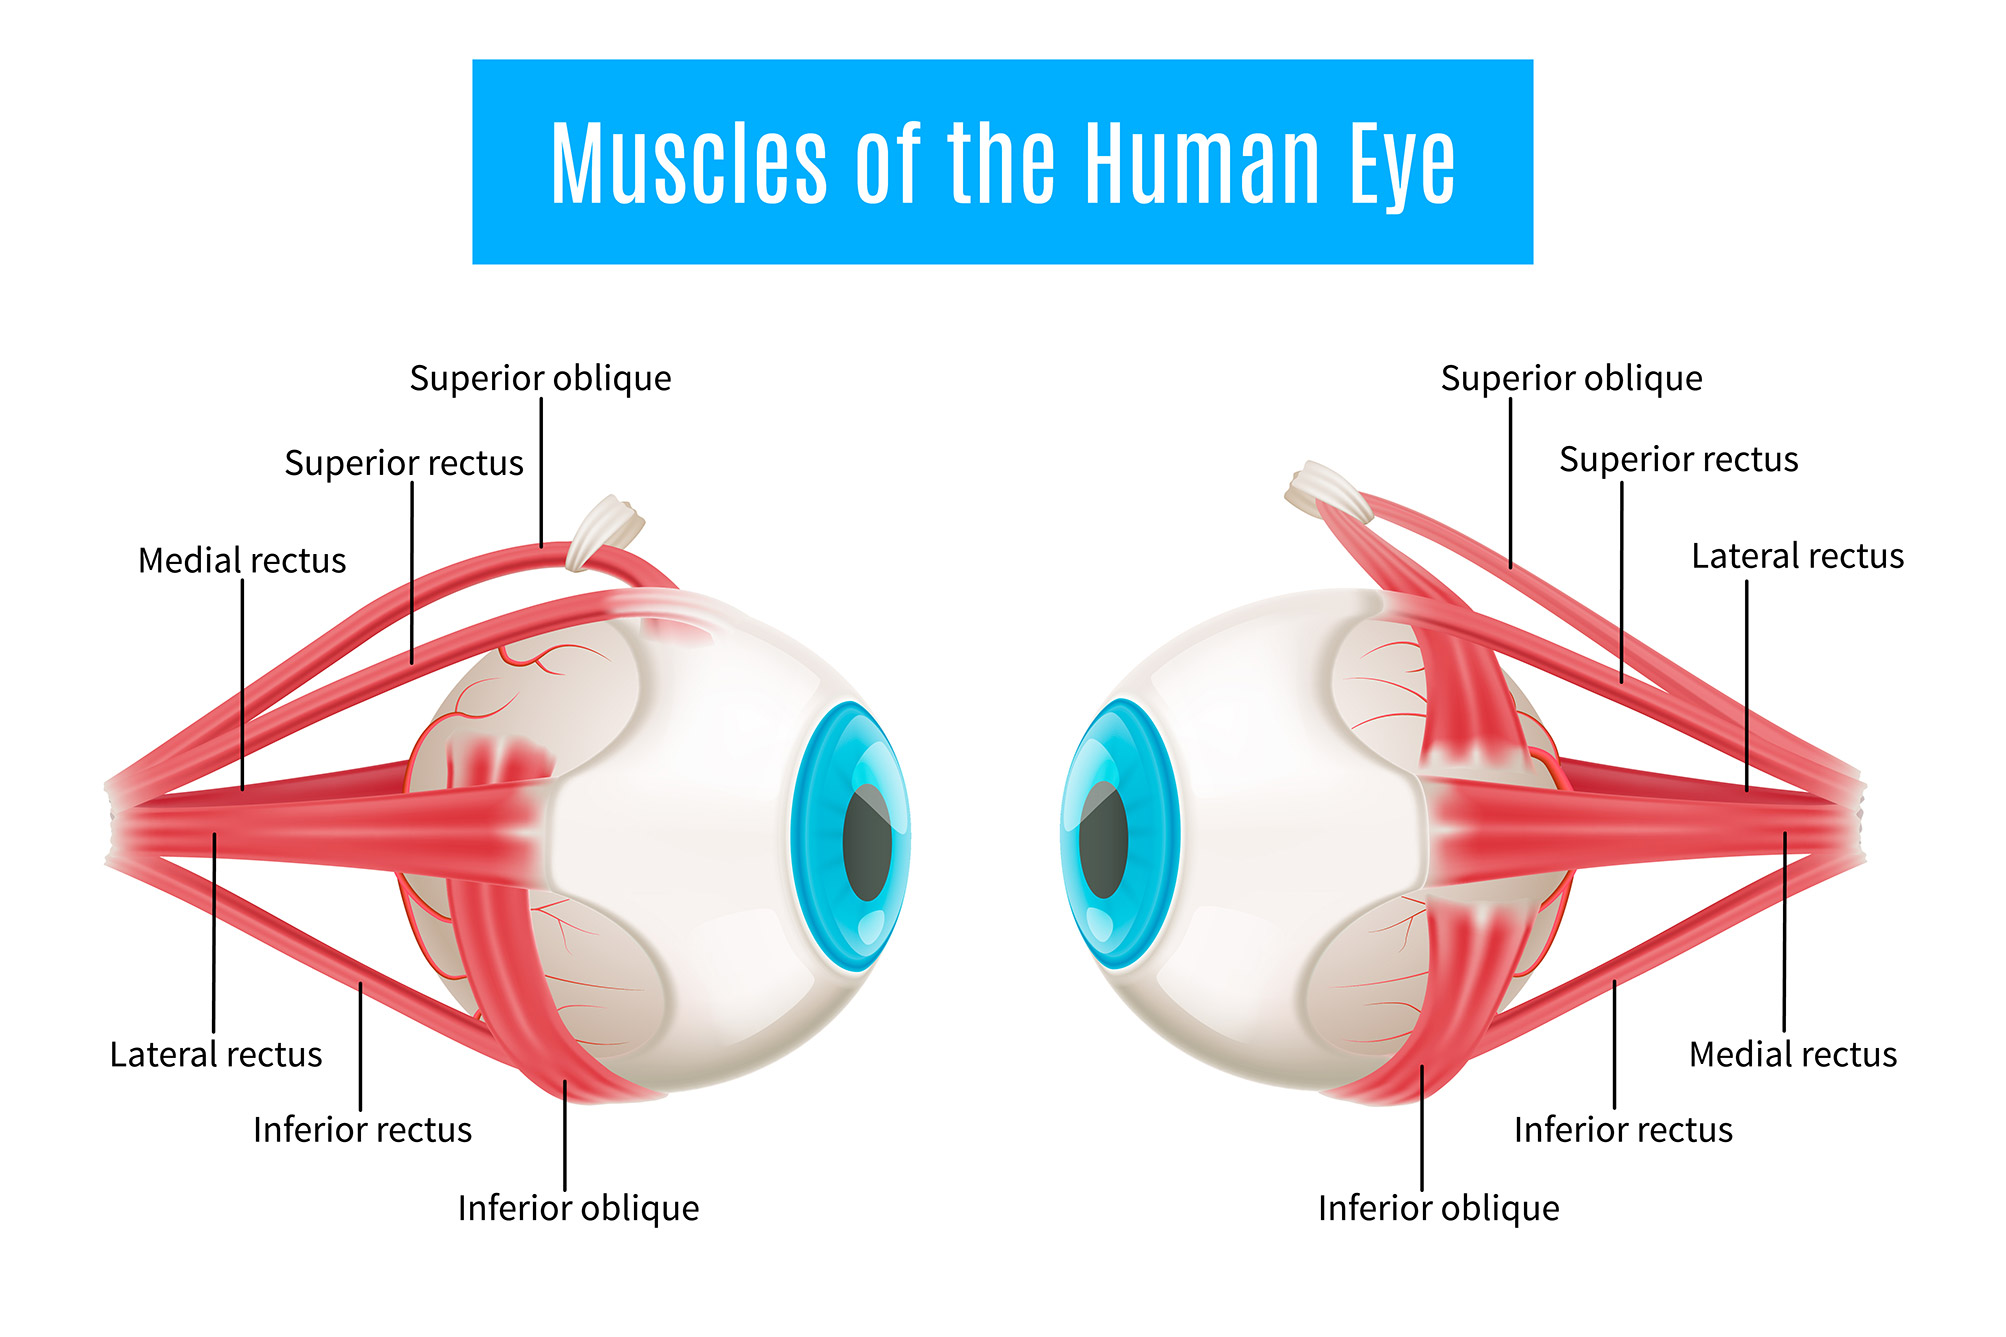 Diagram of human eye anatomy showing the extraocular muscles